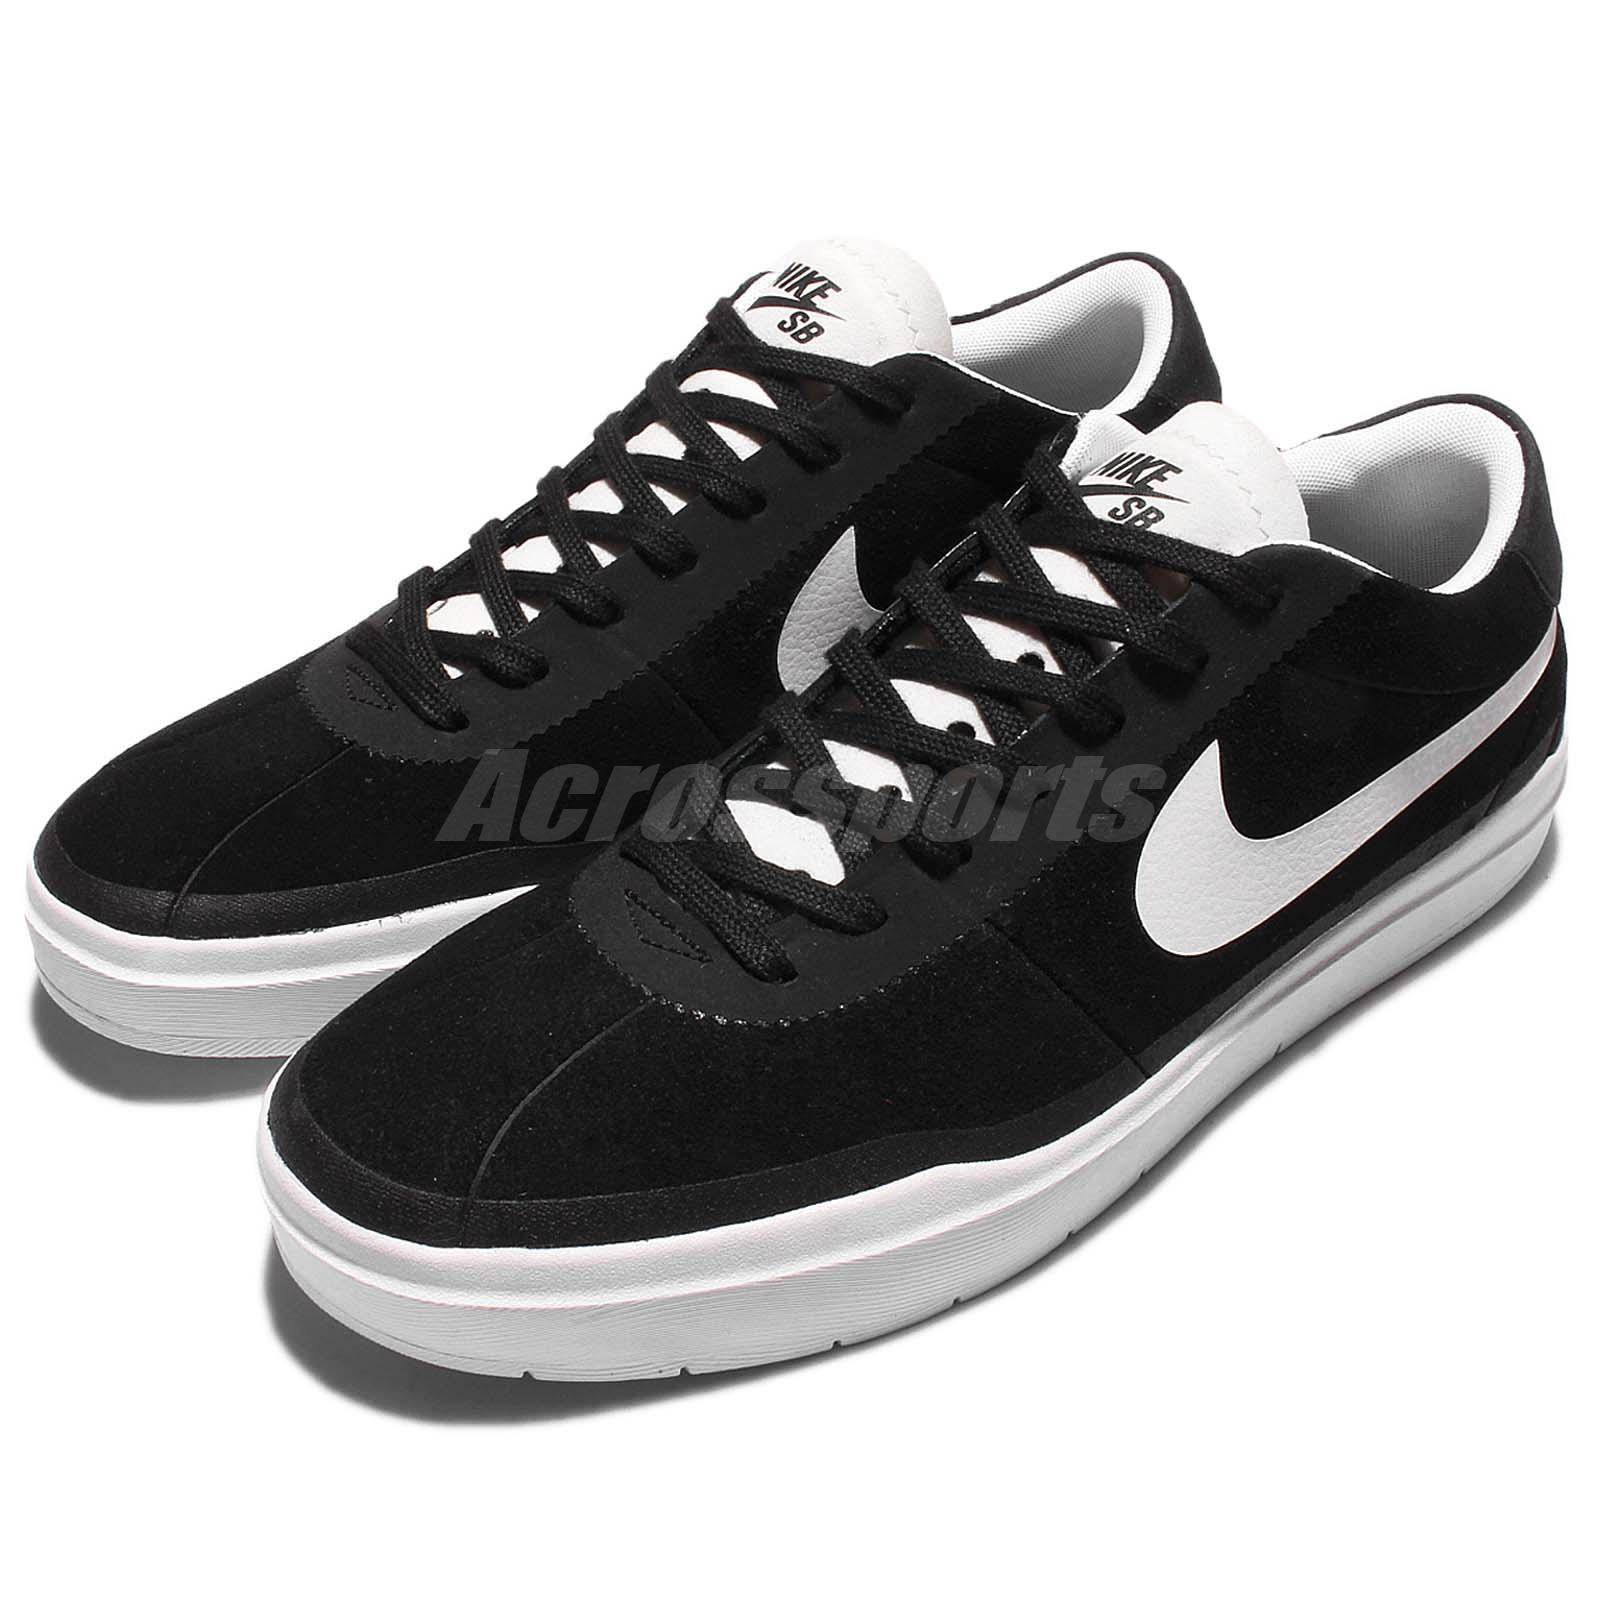 c089b4ad442130 Details about Nike Bruin SB Hyperfeel Black White Mens Skateboarding Shoes  Trainers 831756-001